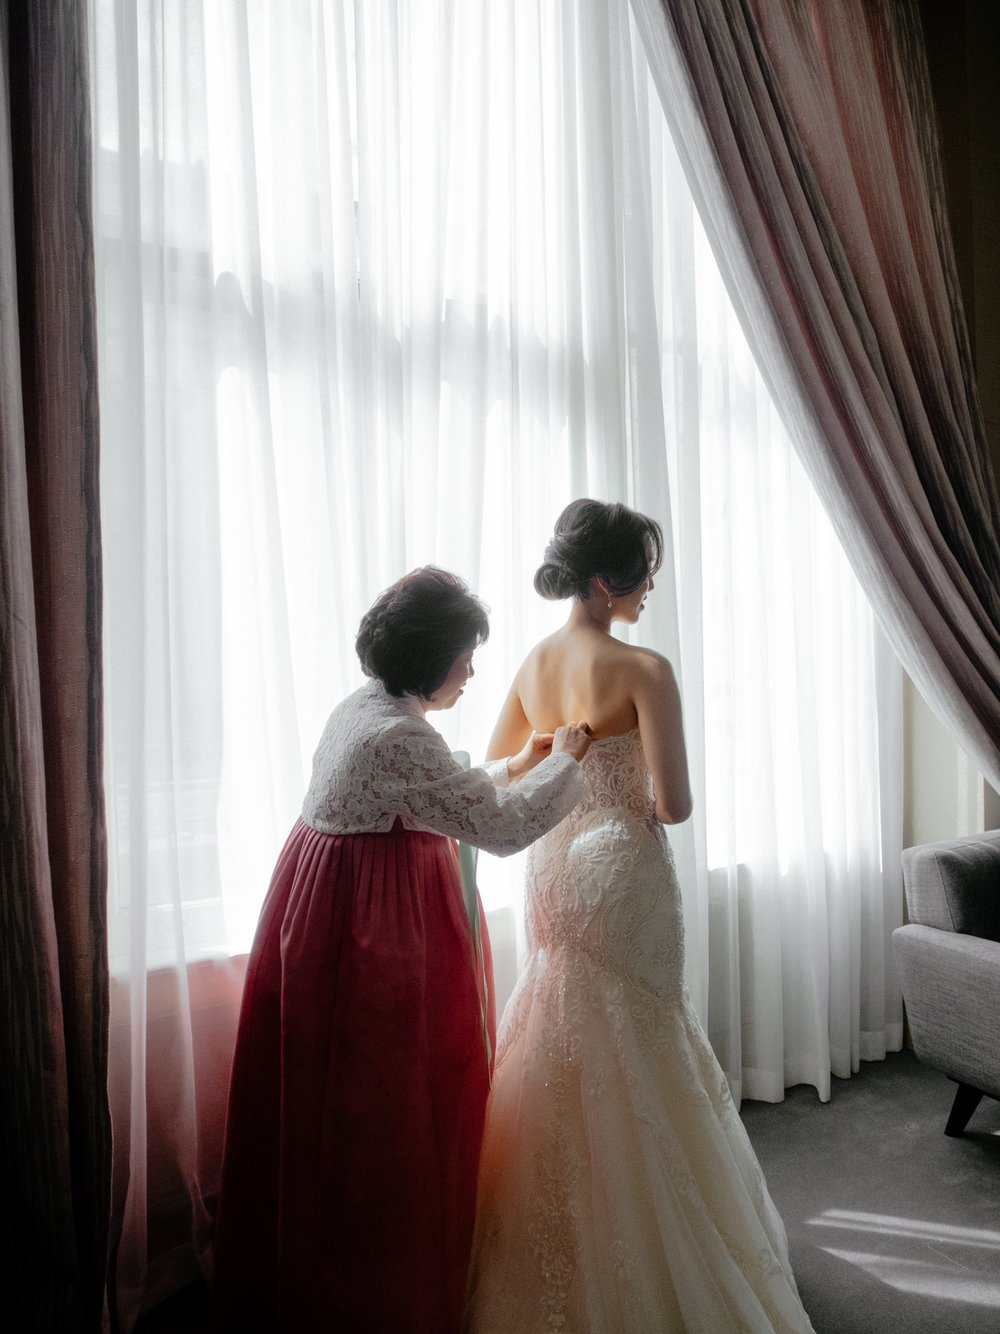 A wedding I helped shoot, with the mother of the bride in a traditional Korean hanbok